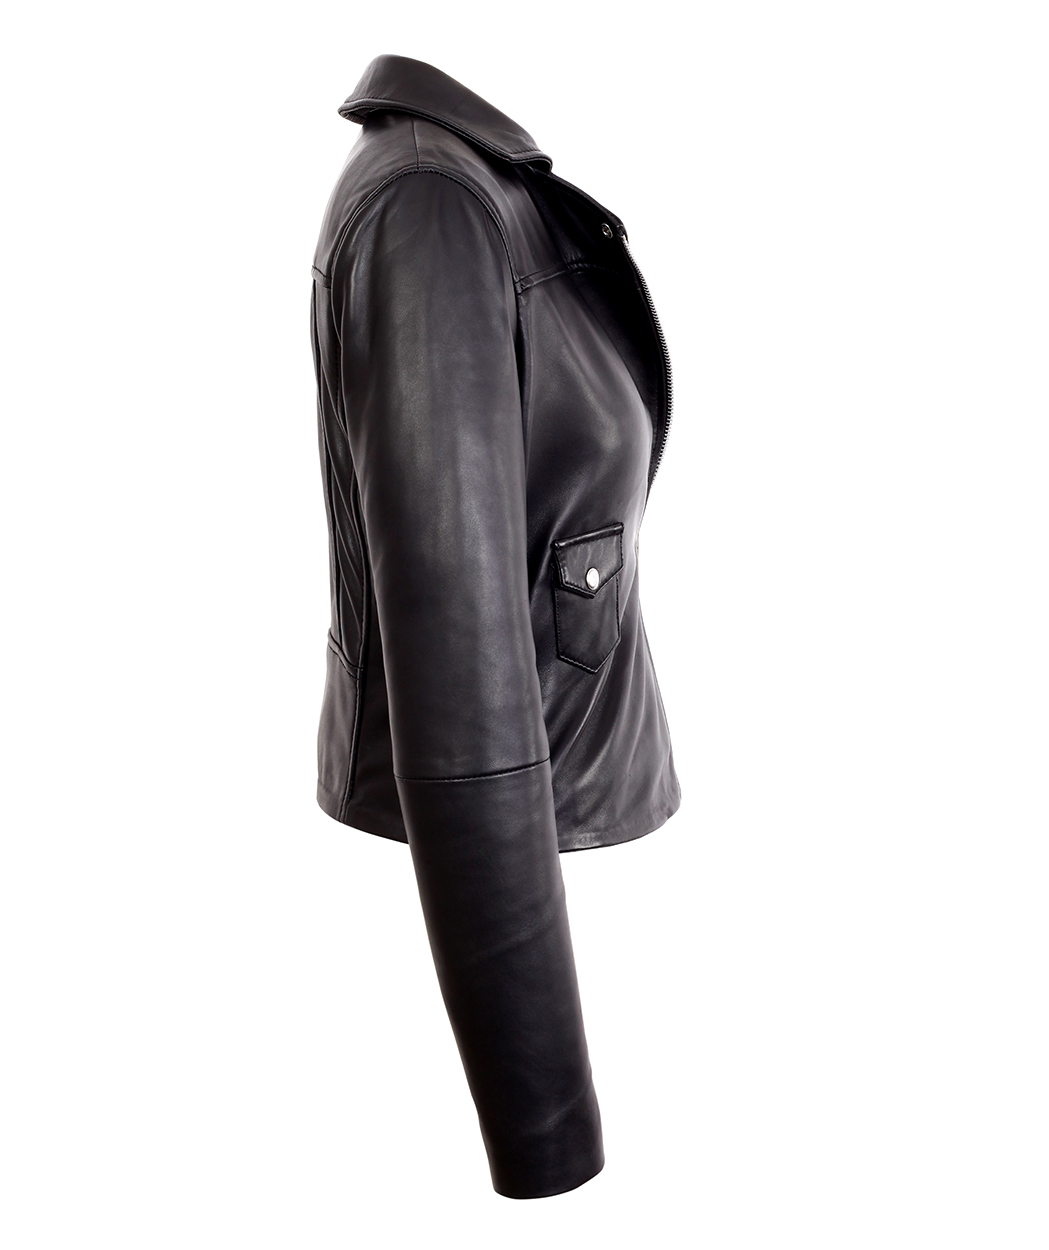 68a0b4591 Womens Black Asymmetrical Bomber Lambskin Real Leather Jacket